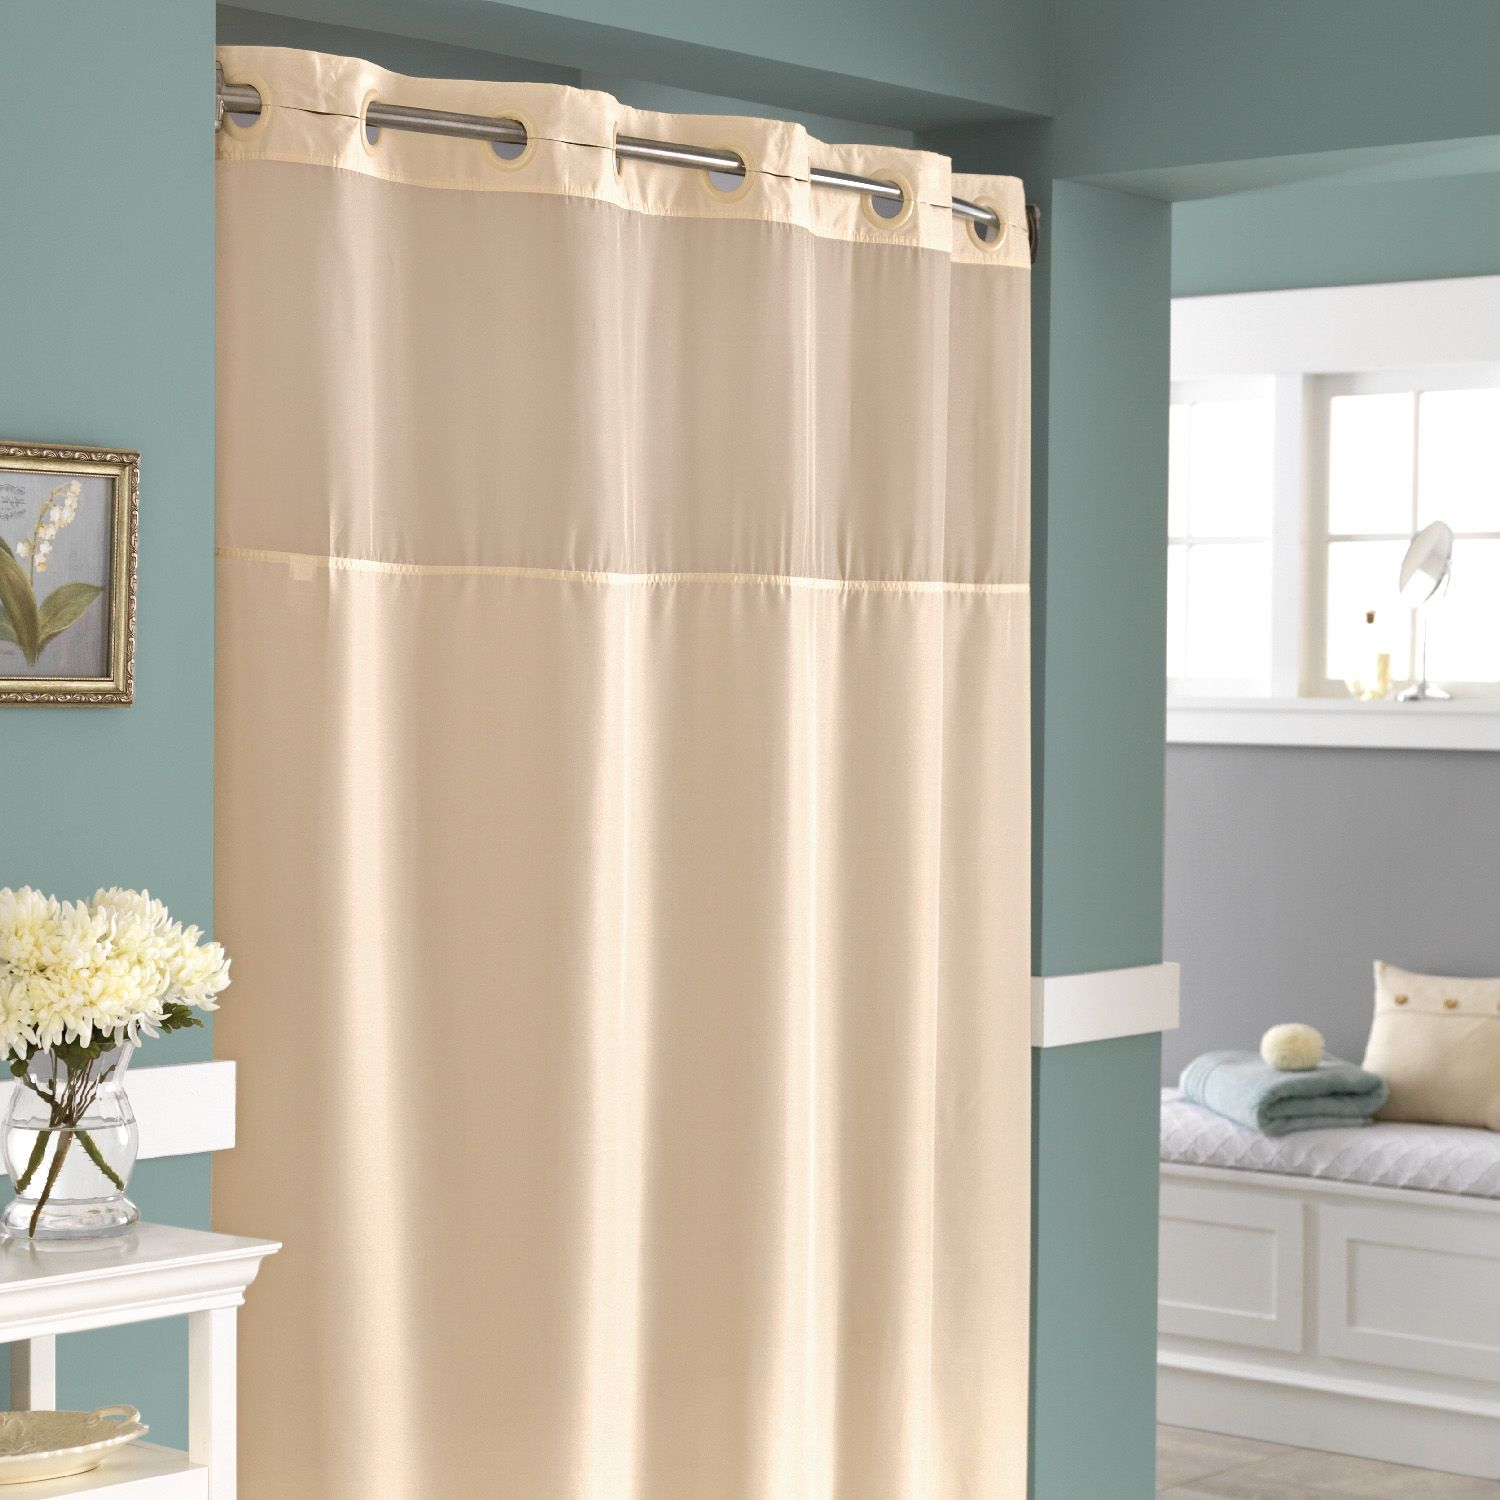 Hookless fabric shower curtain with built in liner taupe diamond pique - Hookless Fabric Shower Curtain Part 36 Shower Curtains Fabric Hookless Mystery Hookless Fabric Shower